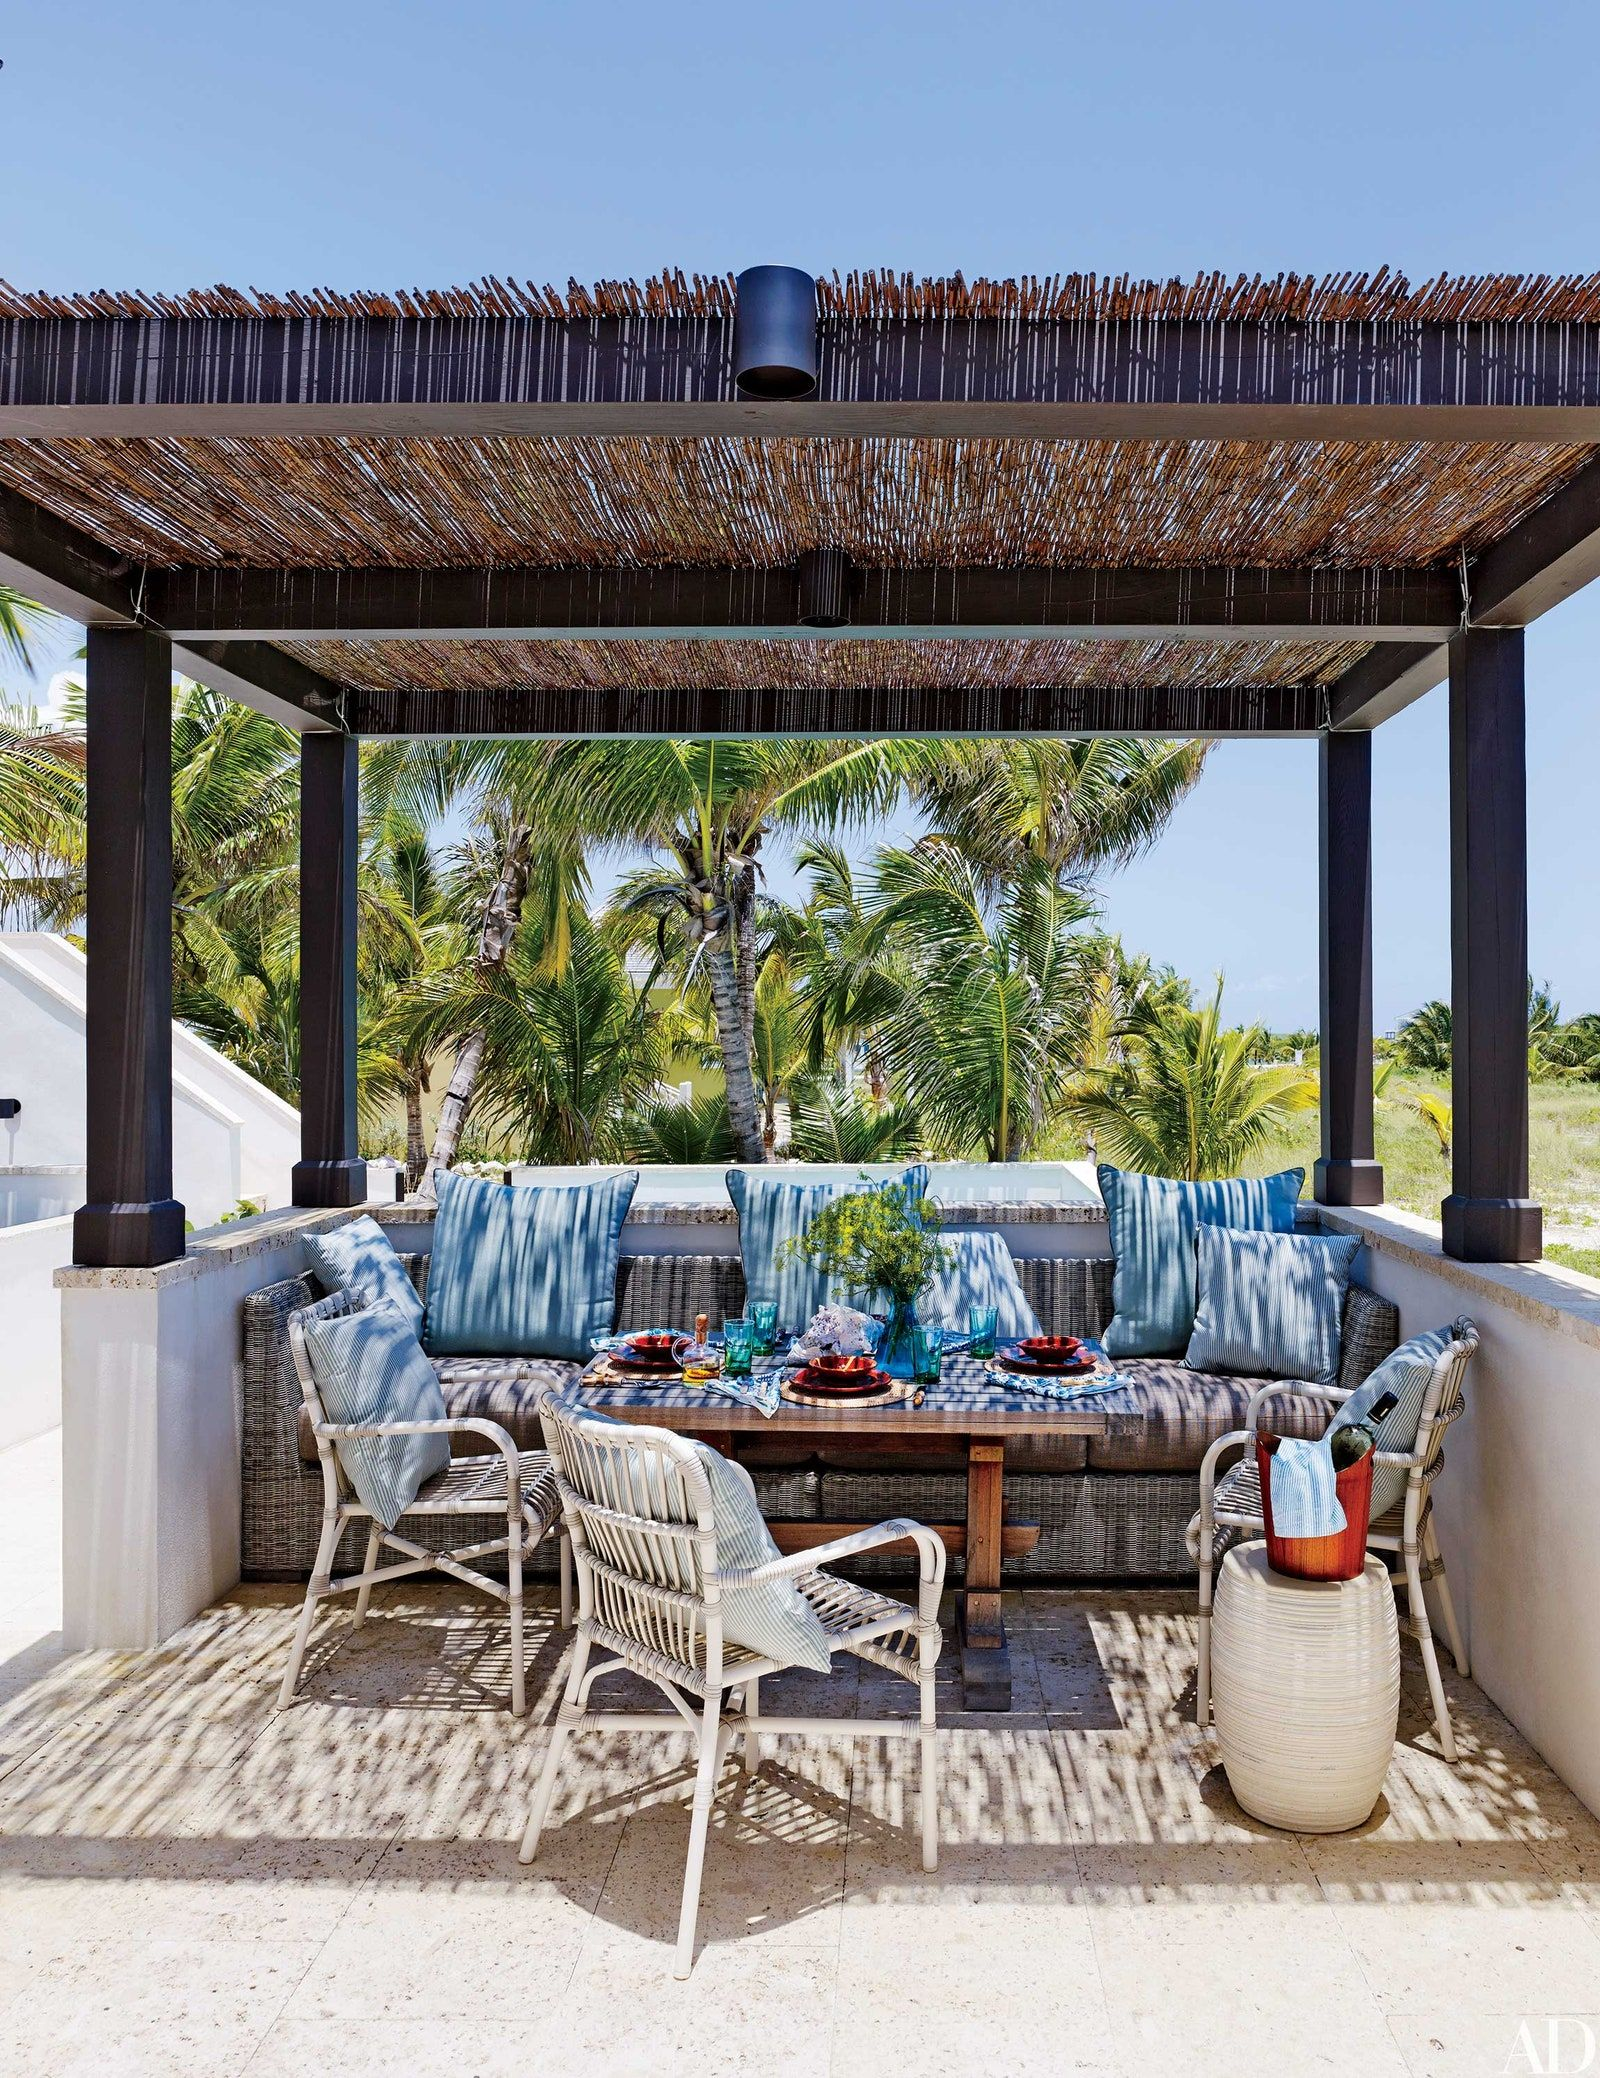 Why You Should Add A Pergola To Your Yard In 2020 Pergola Backyard Pergola Pergola Designs